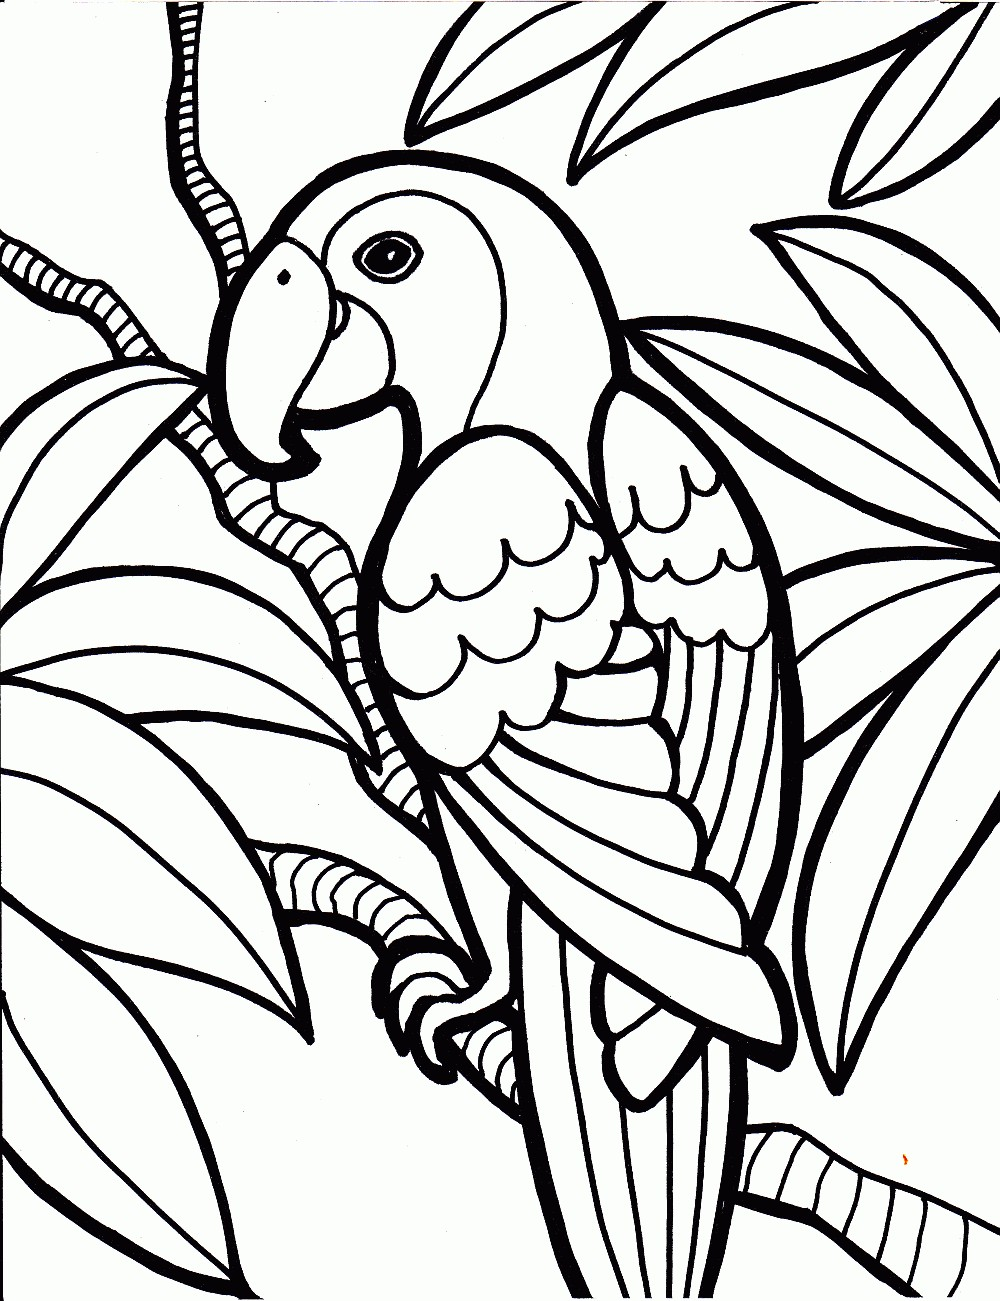 coloring pages | Only Coloring Pages